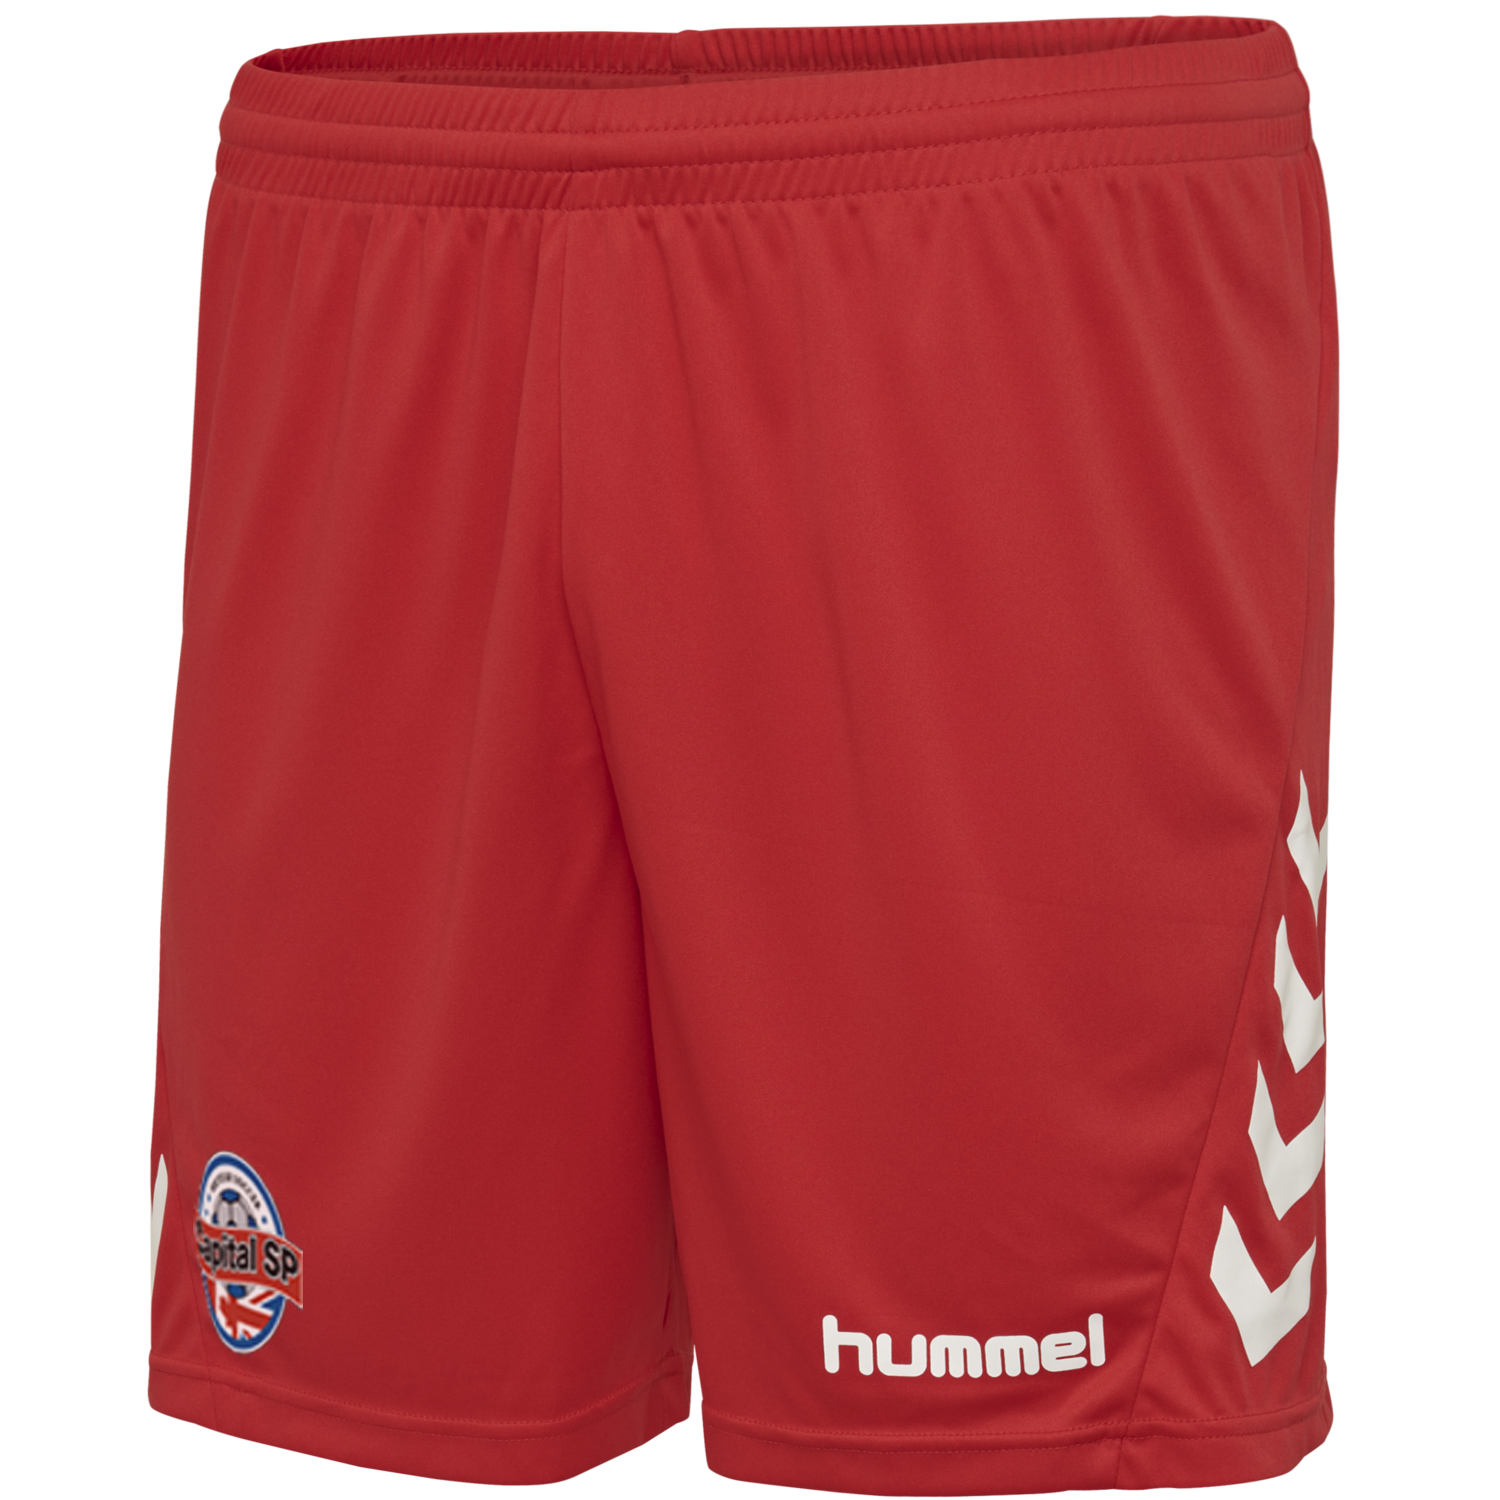 Promo Jersey & Shorts